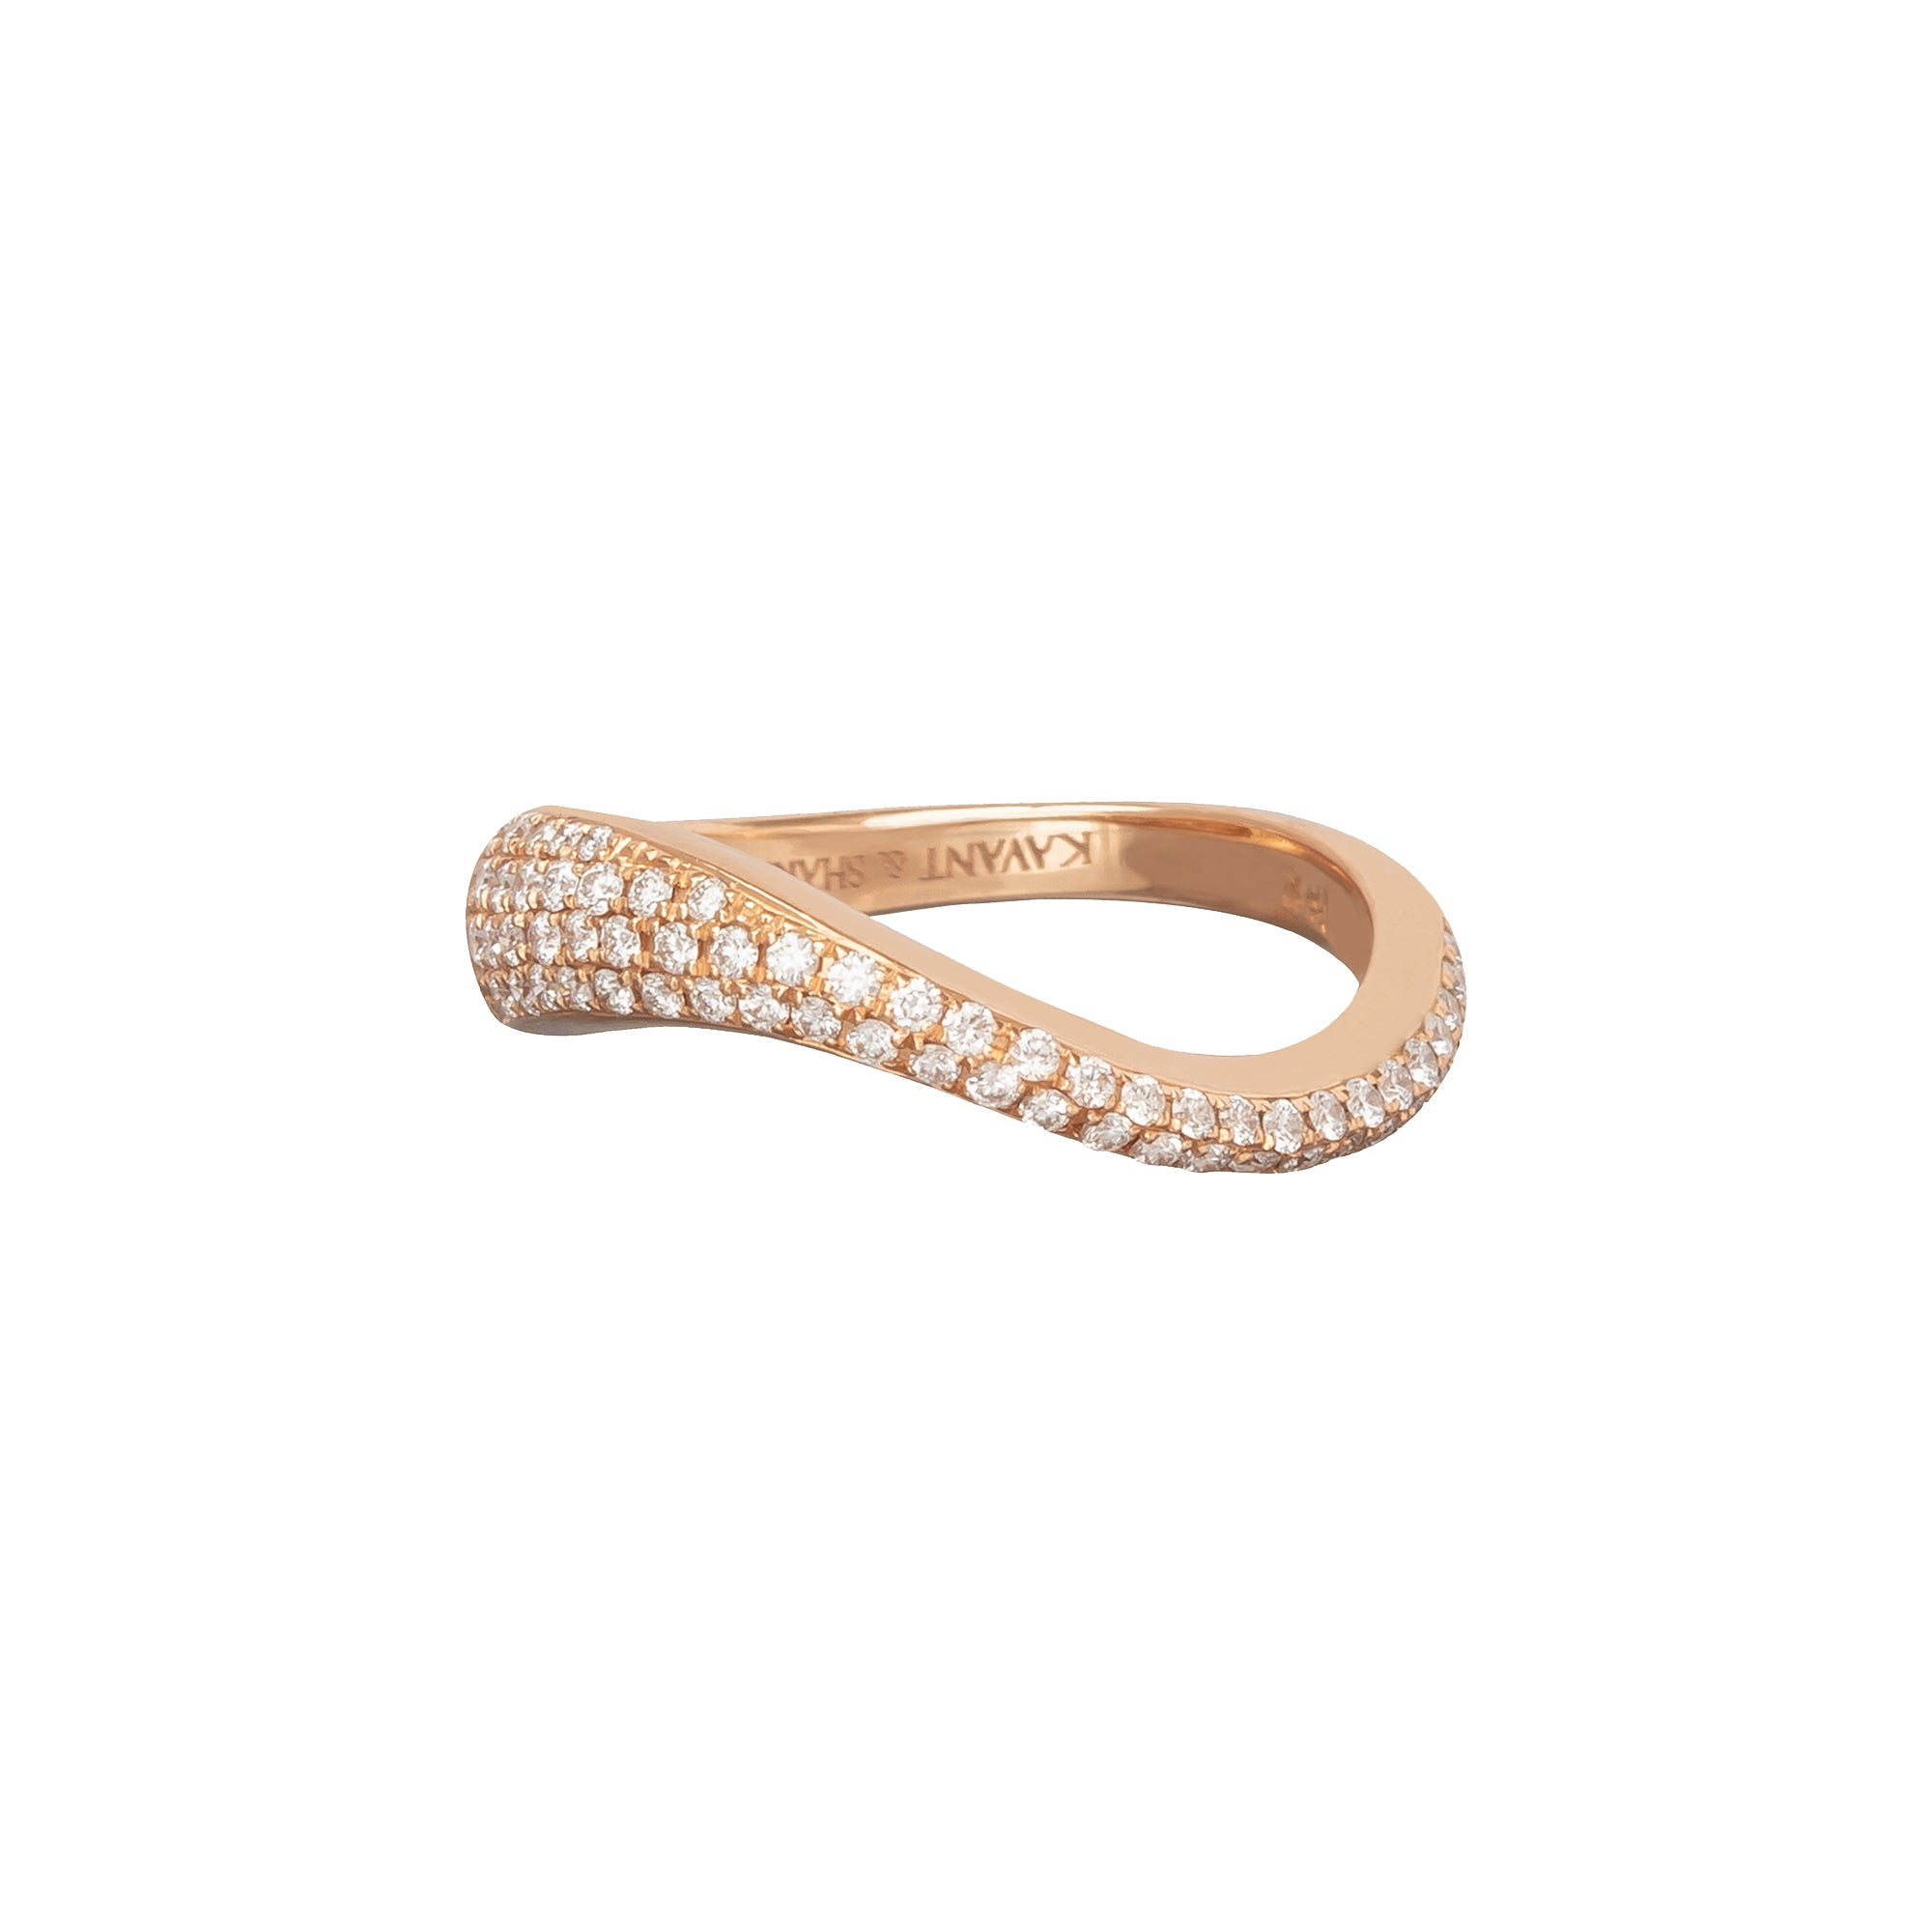 Talay Flow Wave Ring - Kavant & Sharart  - Rings | Broken English Jewelry